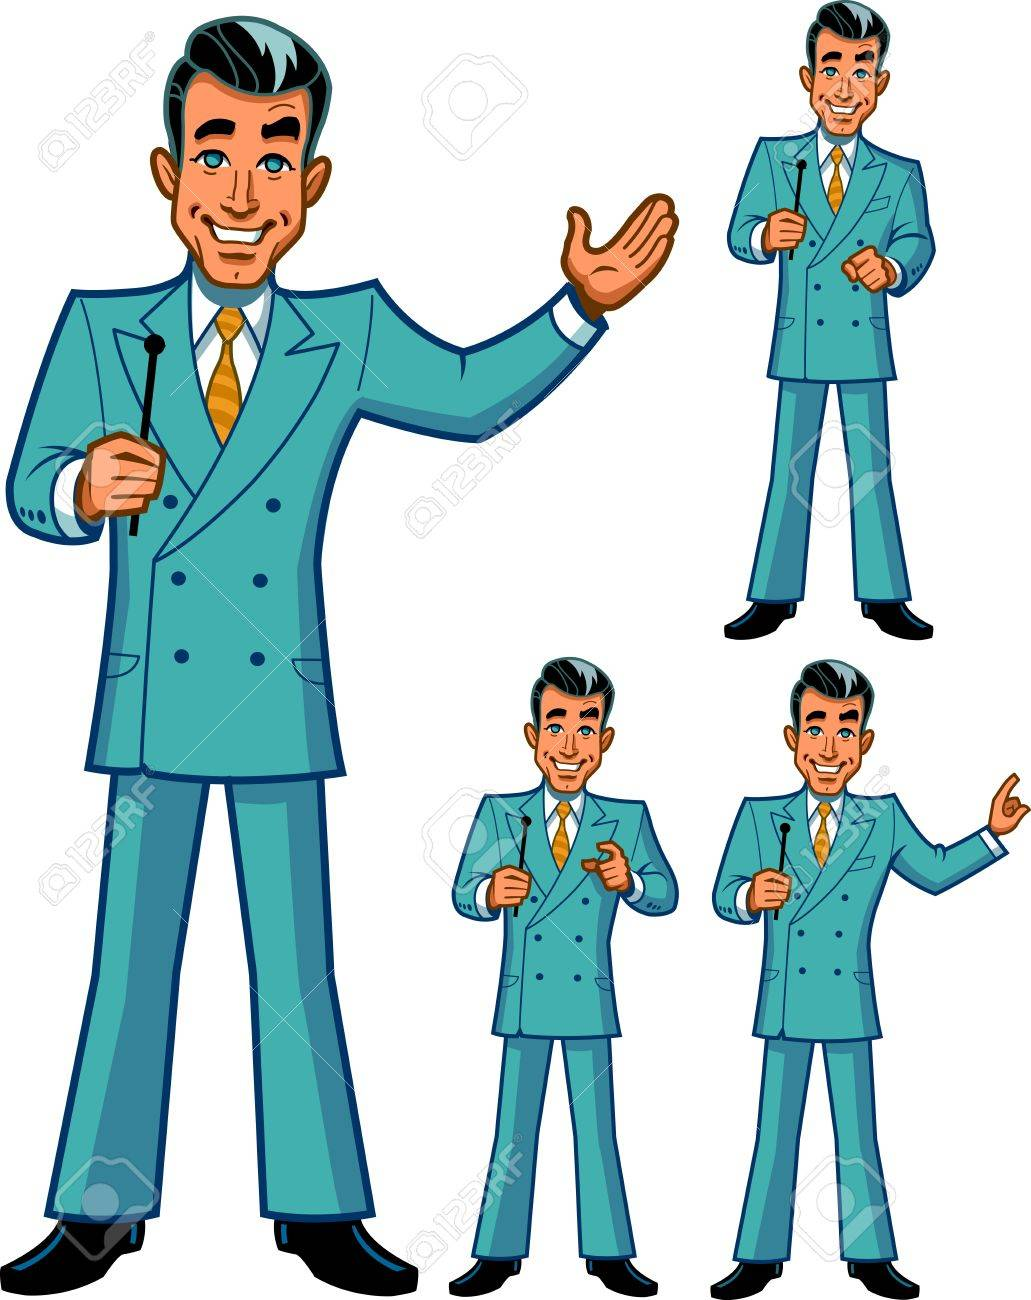 TV Game Show Host in Four Classic Poses.